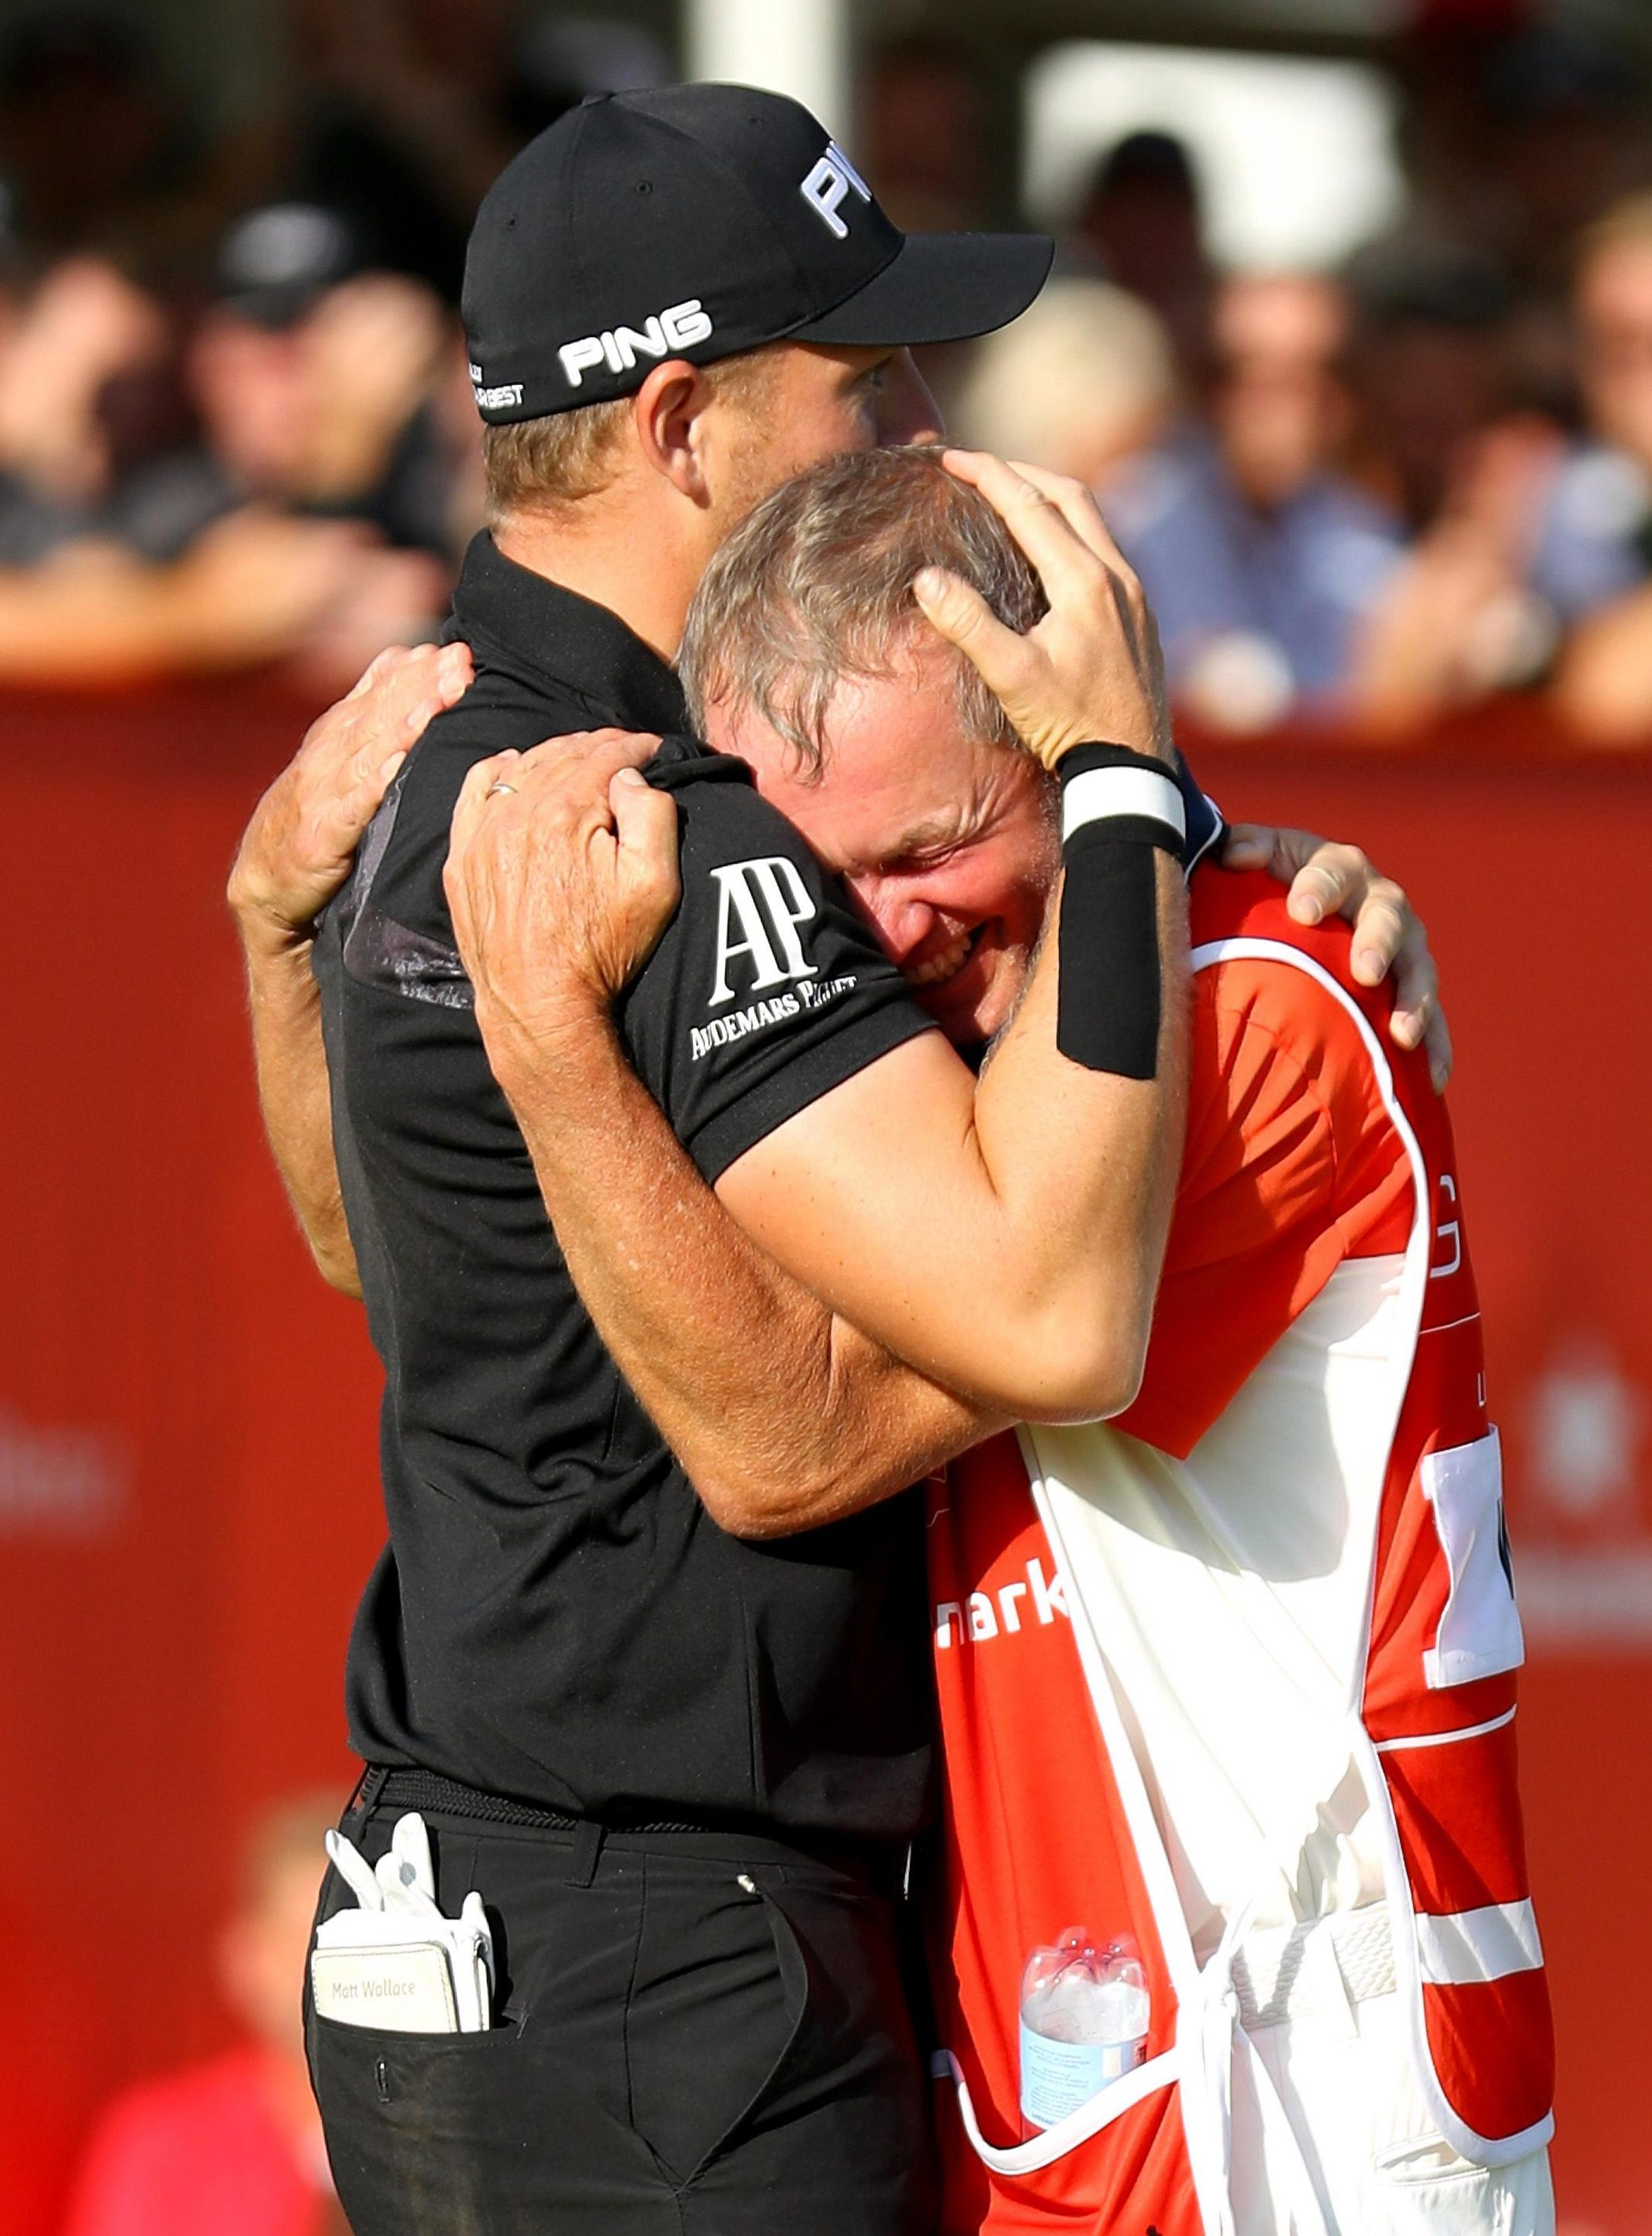 Matt Wallace shares his play-off victory joy in Denmark with his caddie